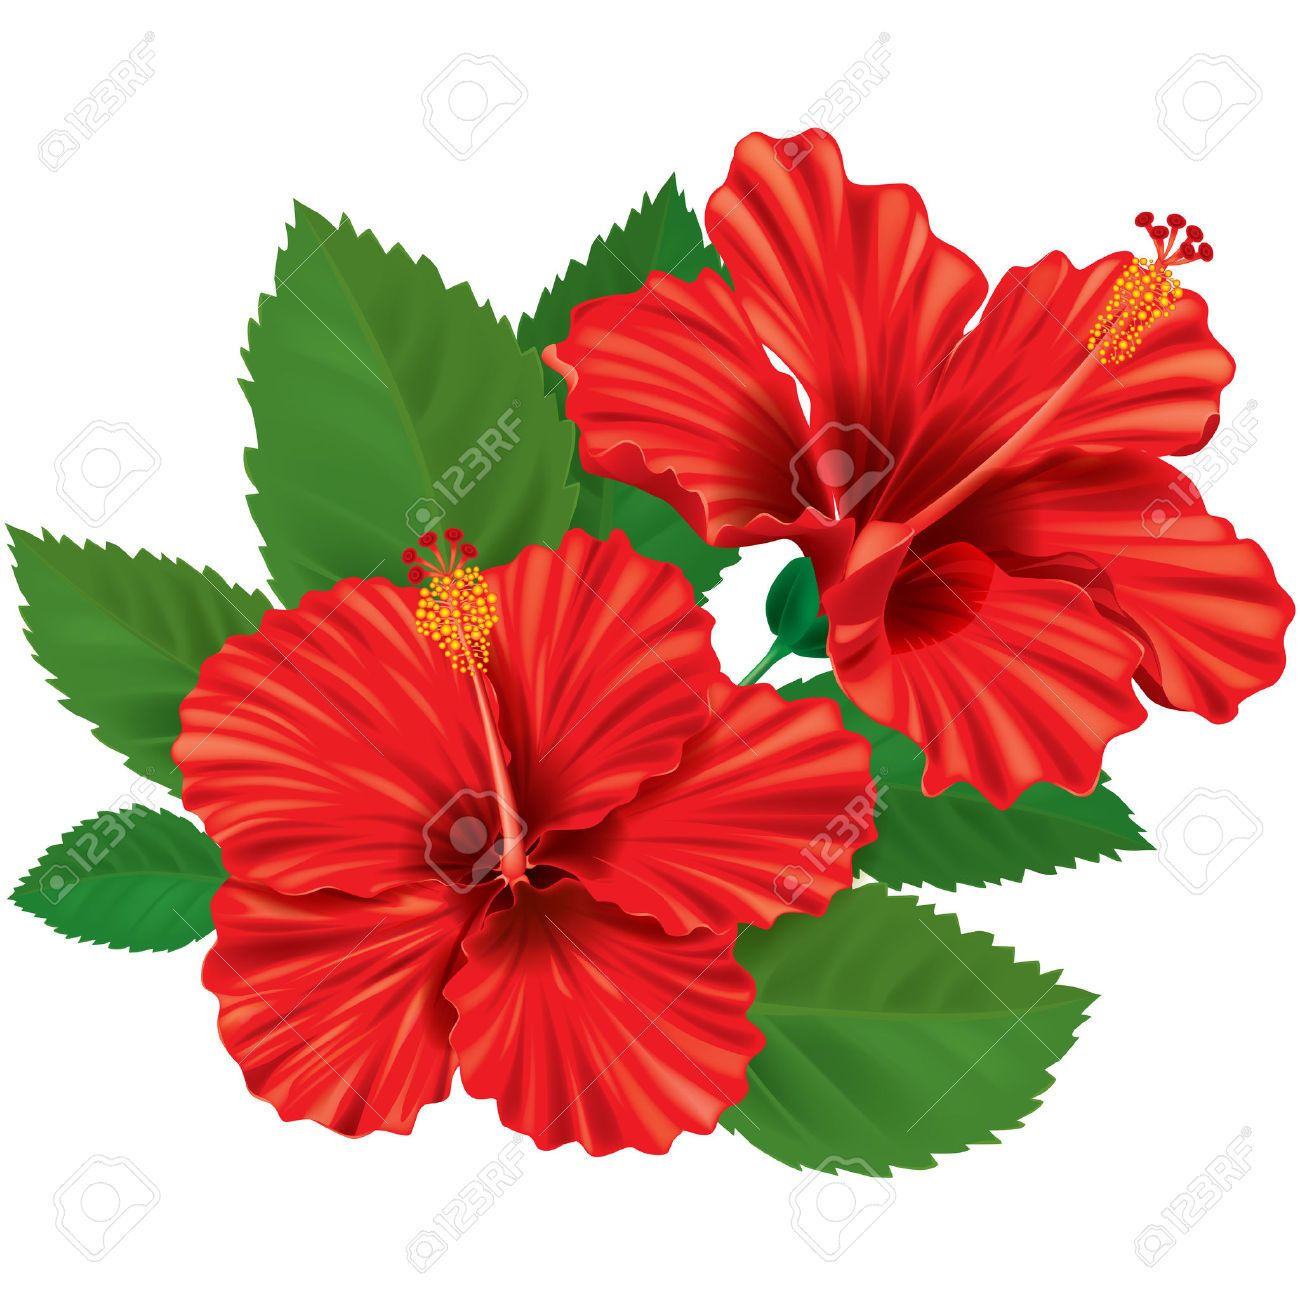 Images For Red Hibiscus Flower Painting Flower Painting Hibiscus Drawing Hibiscus Flowers